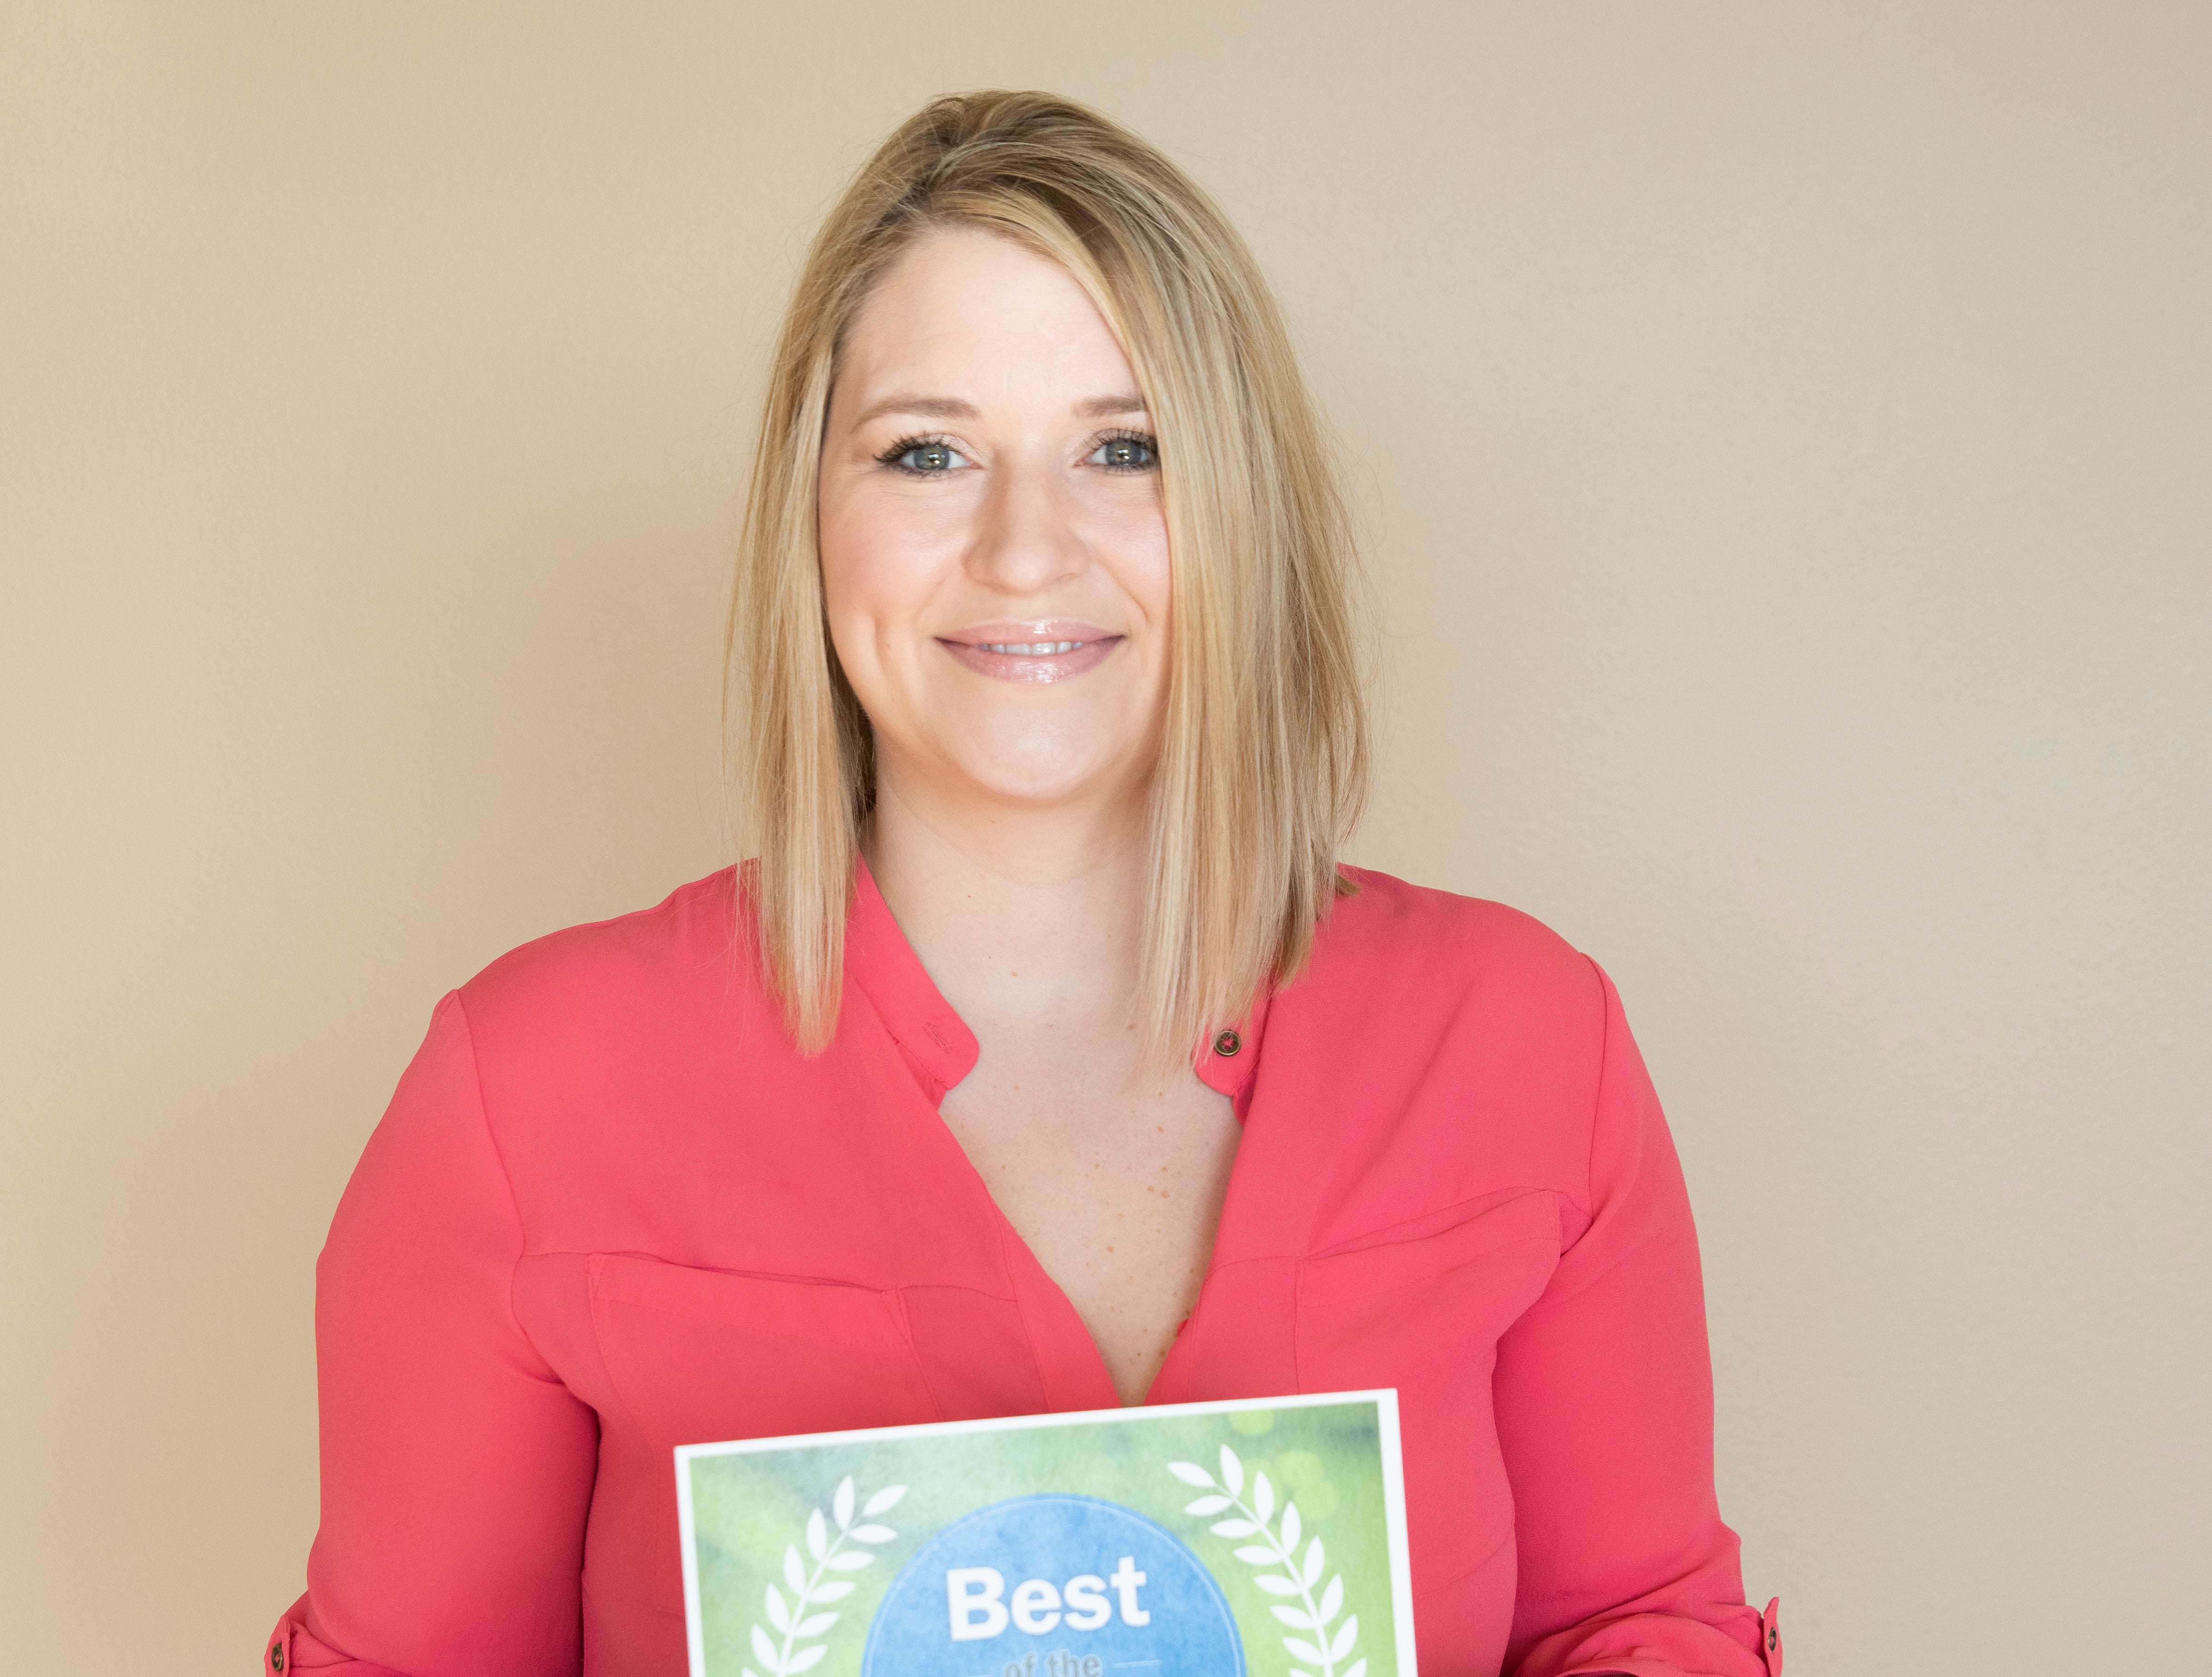 Waxing by Teea won gold for Best Waxing in the 2019 Best of the Mid-Valley.